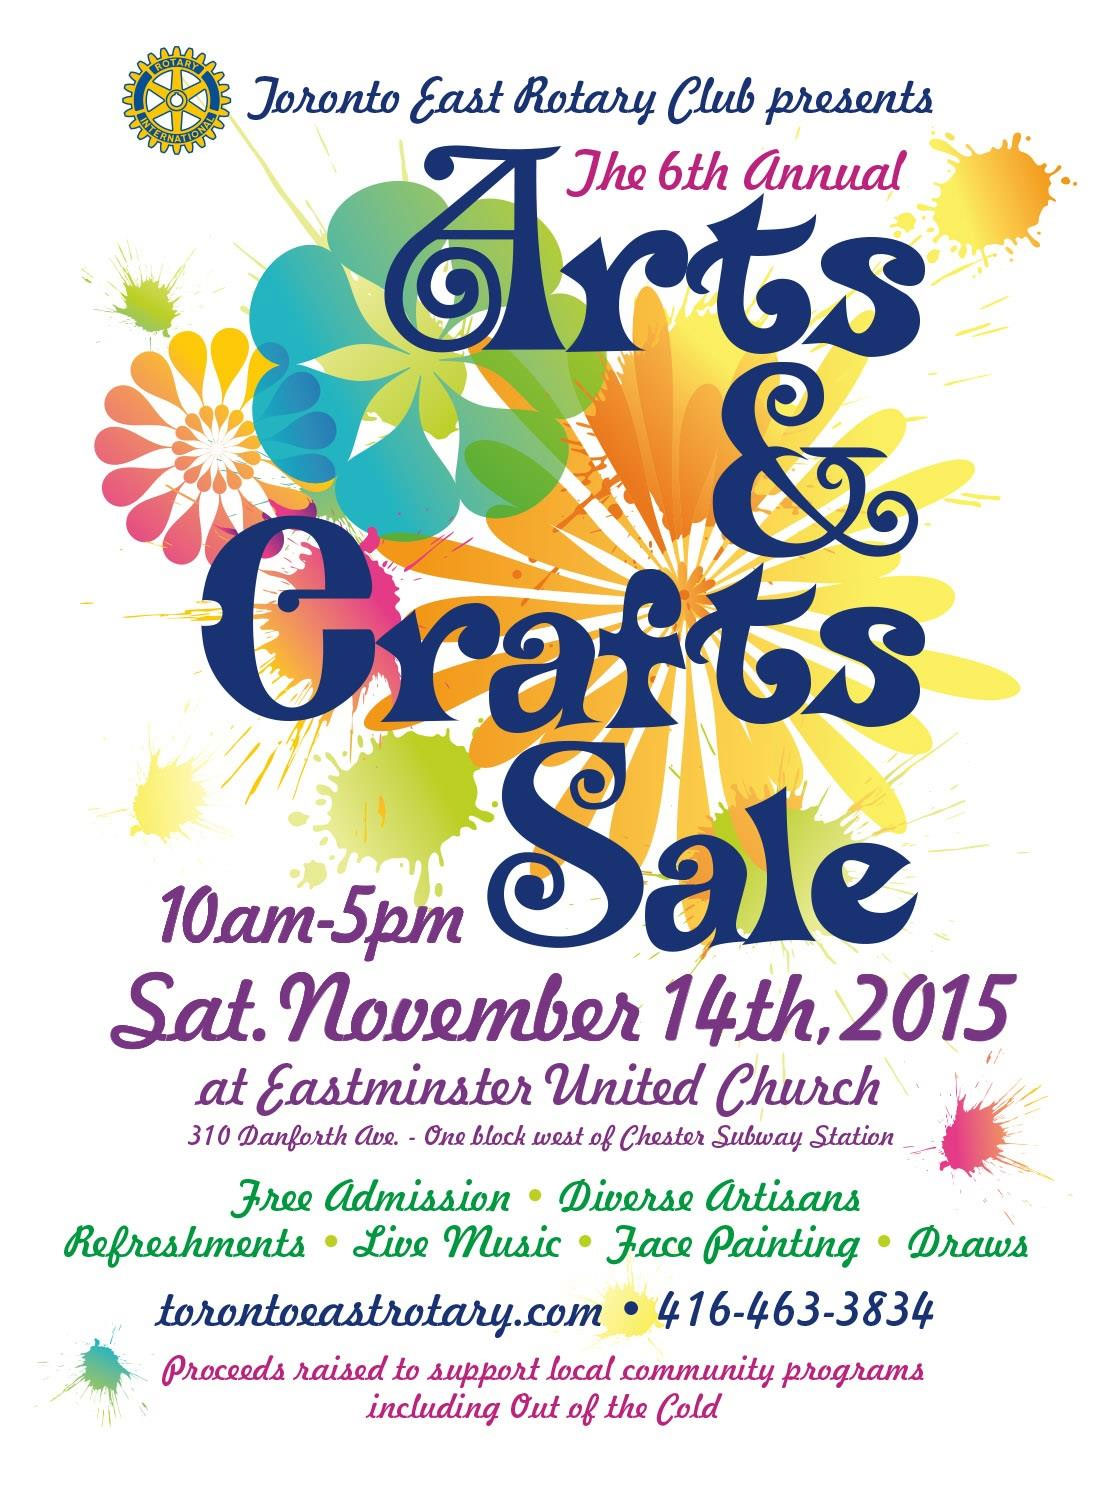 A poster for the Toronto East Rotary Club's arts and crafts sale on Nov. 14, 2015. Photo via torontoeastrotary.com.